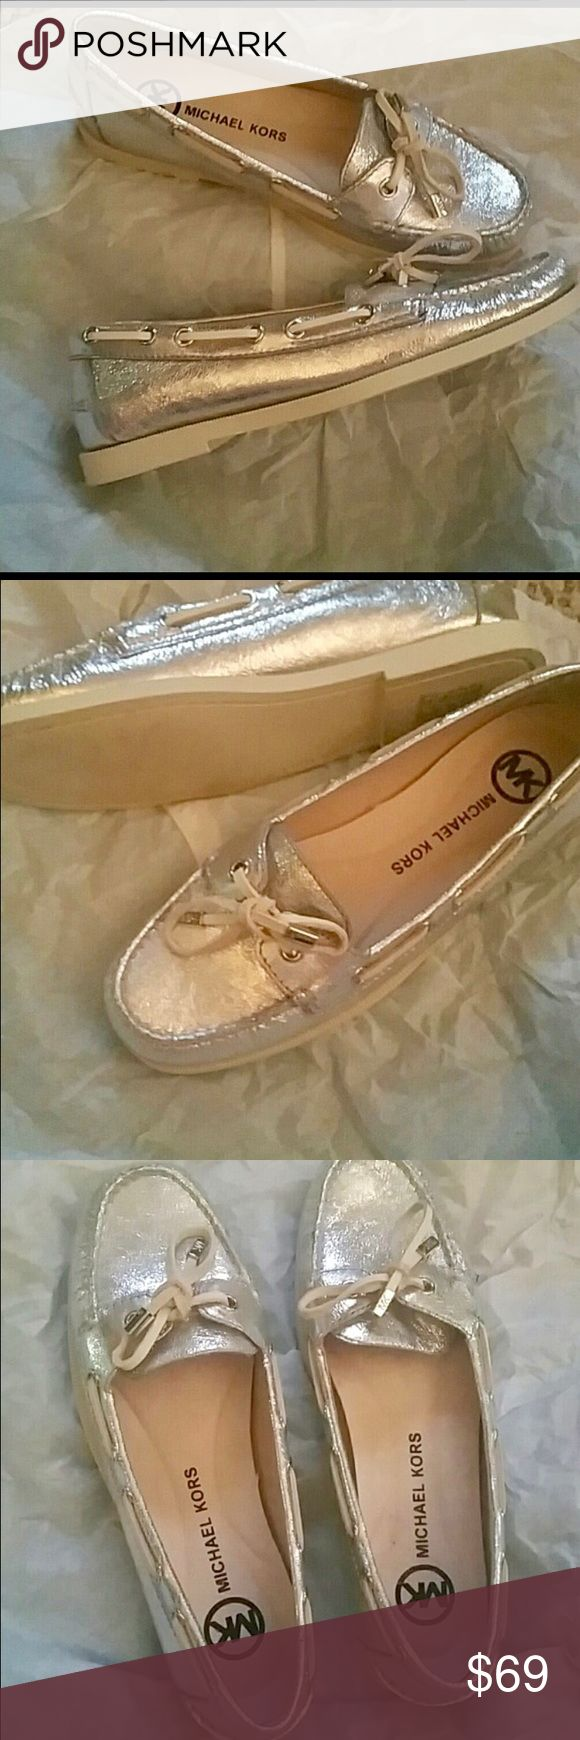 New Michael Kors Leather Tie Boat Loafers MK's glorious answer to Sherry. Really beautiful silver leather with rubber bottom Dock shoe. Pairs with any outfit. Great gift!     #Michael Kors find Michael Kors Shoes Flats & Loafers